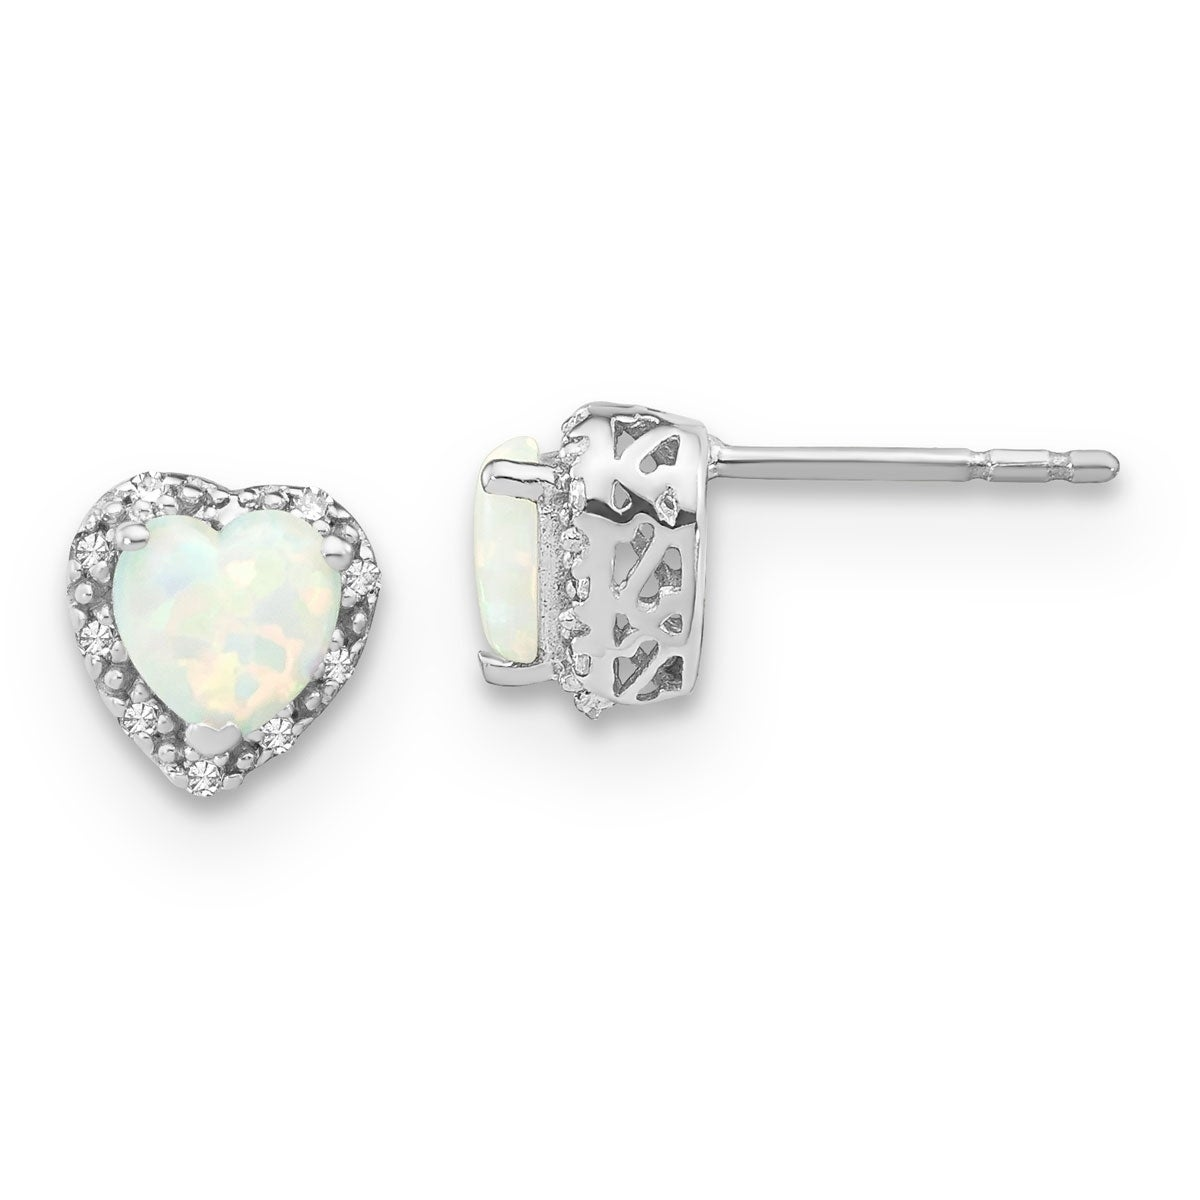 Perfect Jewelry Gift SS White Ice .02 ct Diamond Post Earrings